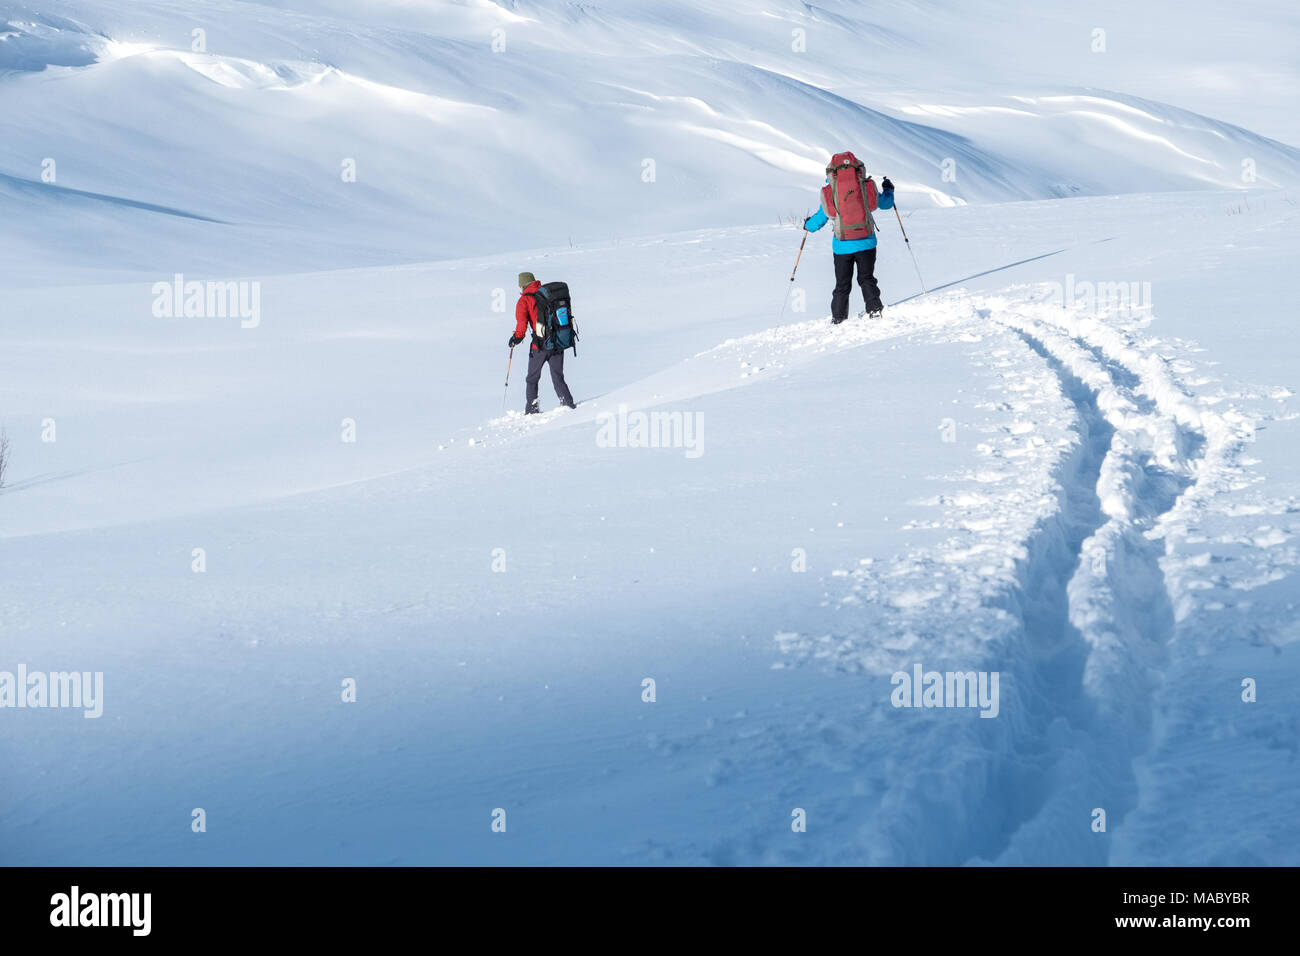 Two ski tourers / x-c skiers in northern Sweden - Stock Image